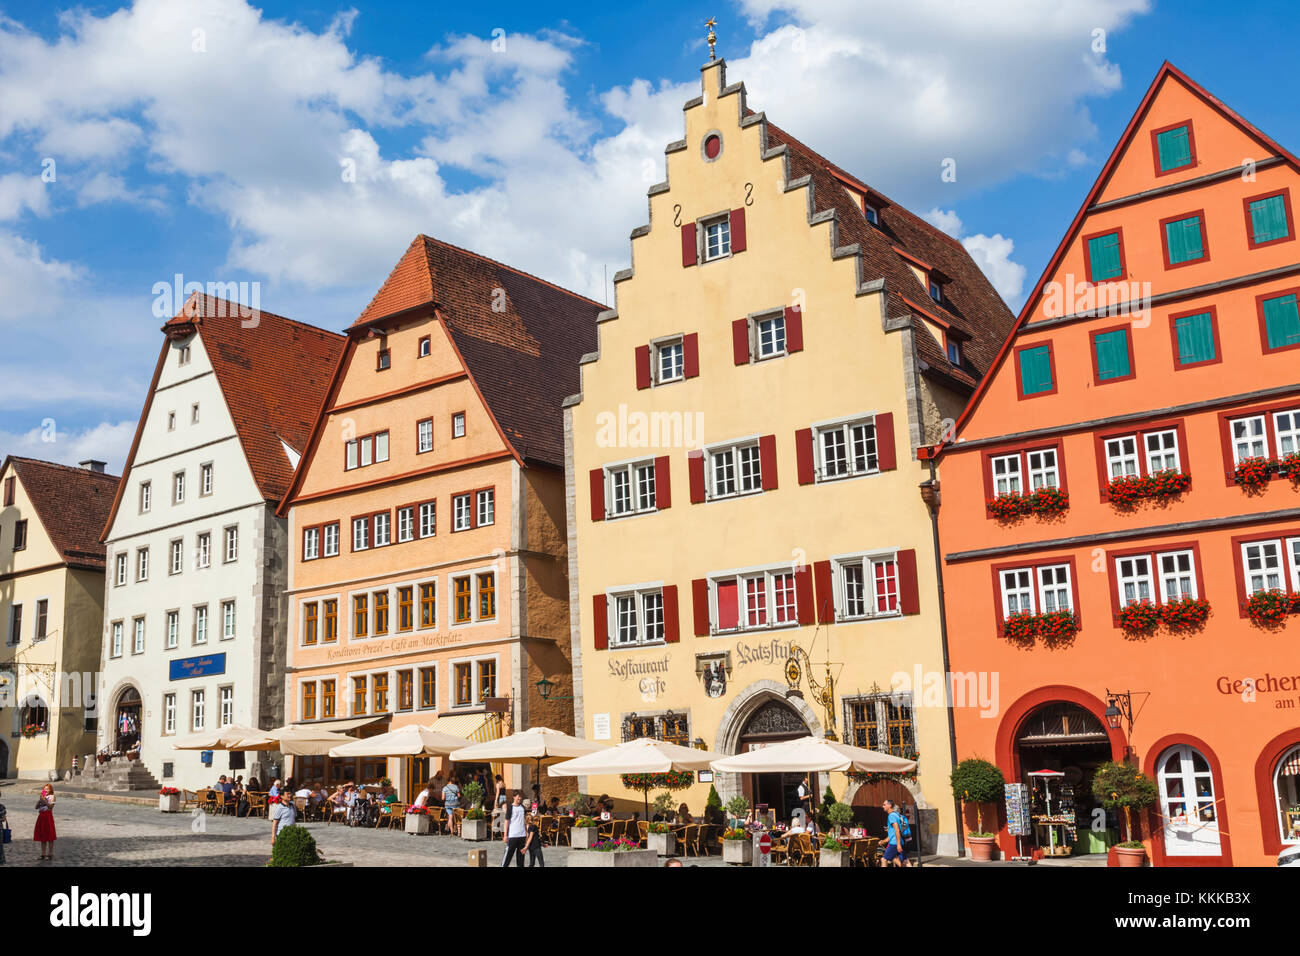 restaurants cafes rothenburg ob der stock photos restaurants cafes rothenburg ob der stock. Black Bedroom Furniture Sets. Home Design Ideas